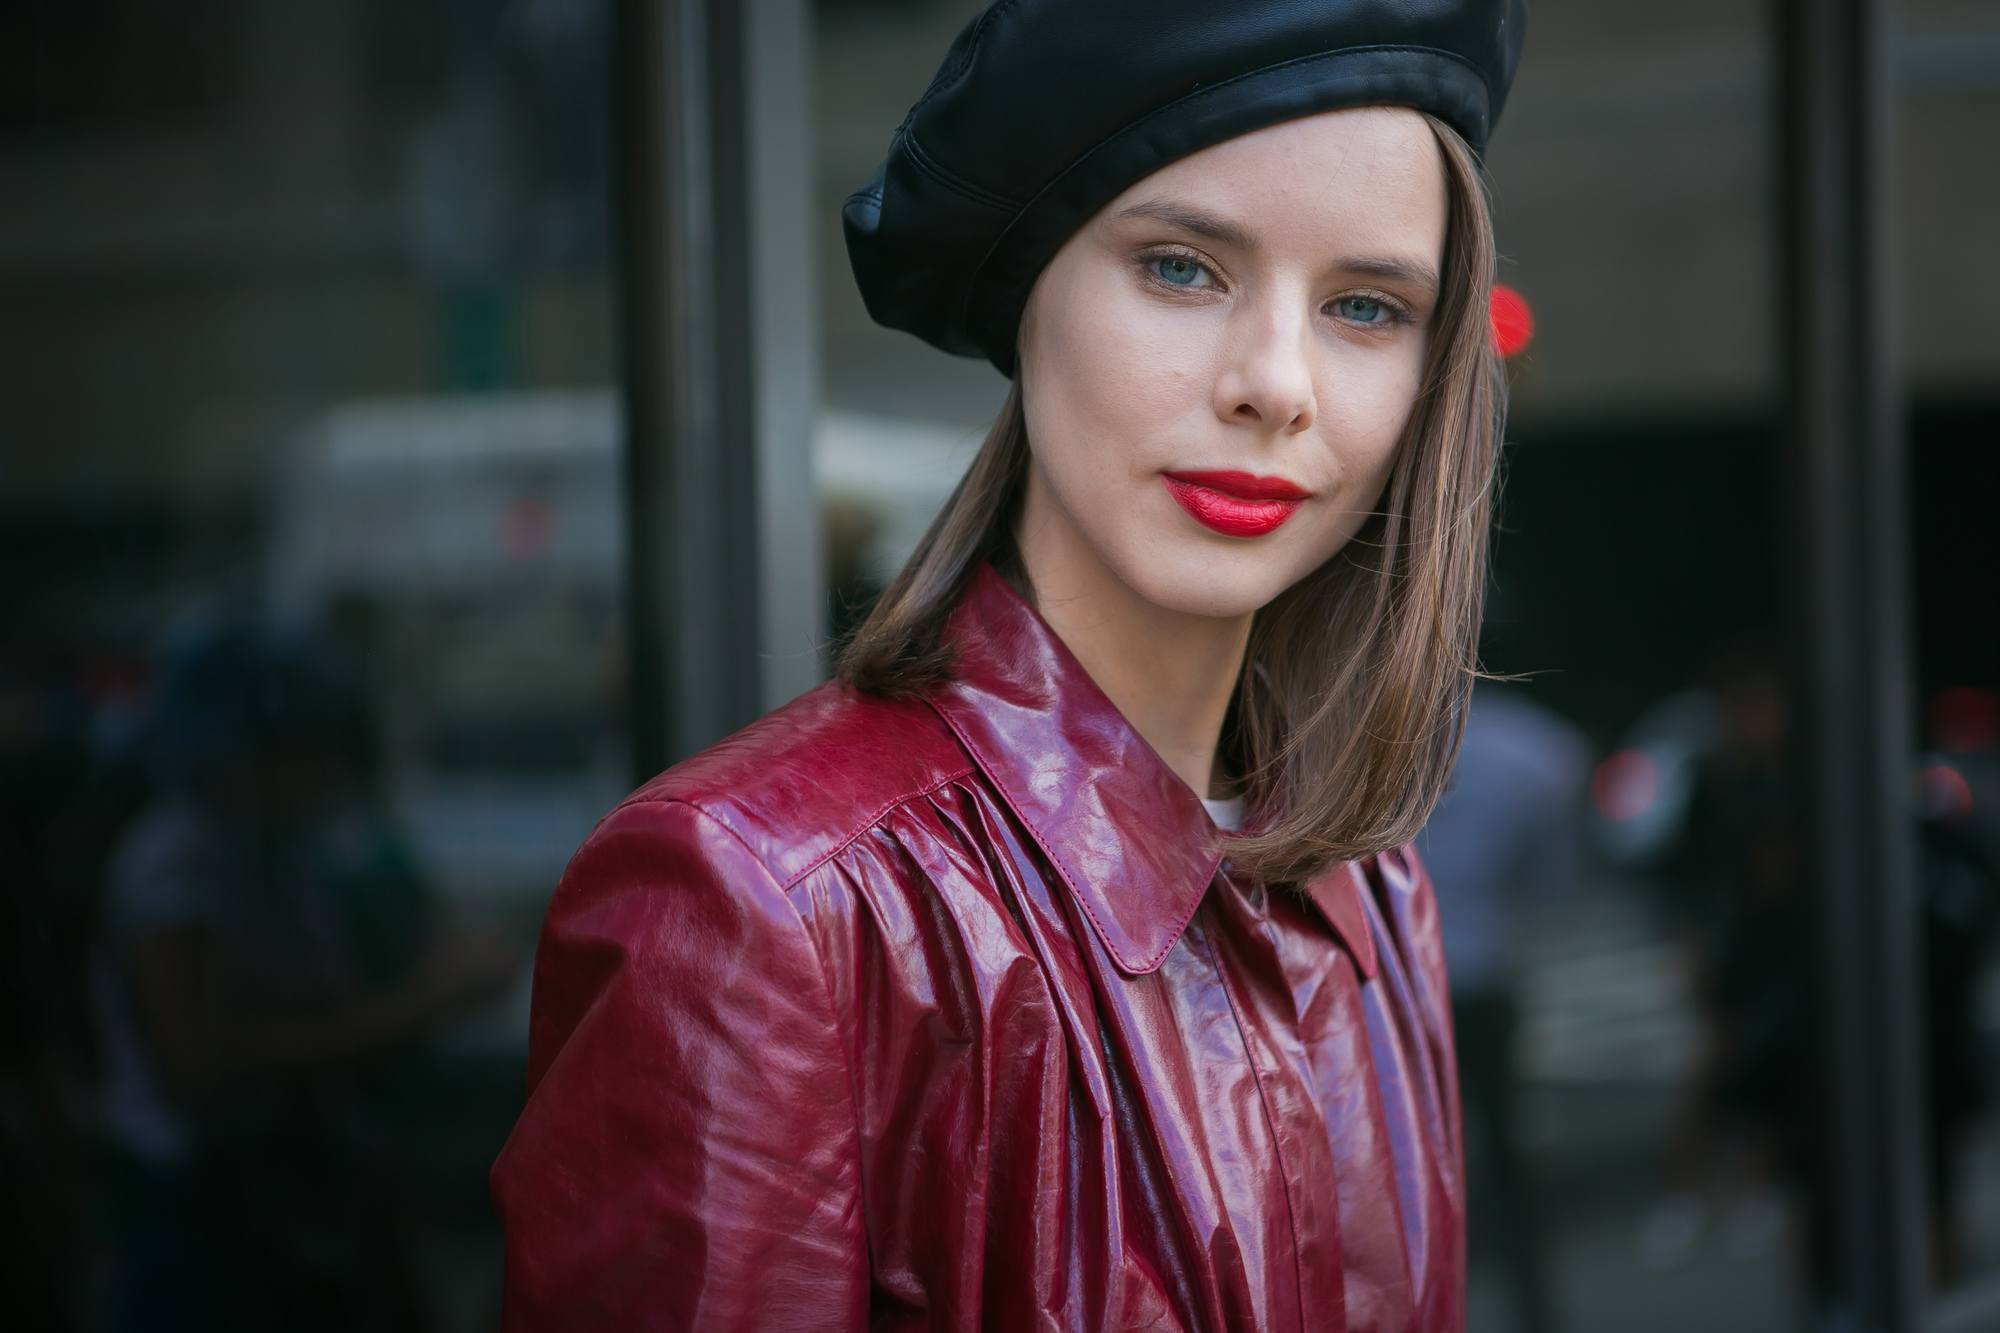 close up shot of woman with beret hairstyle, wearing red leather